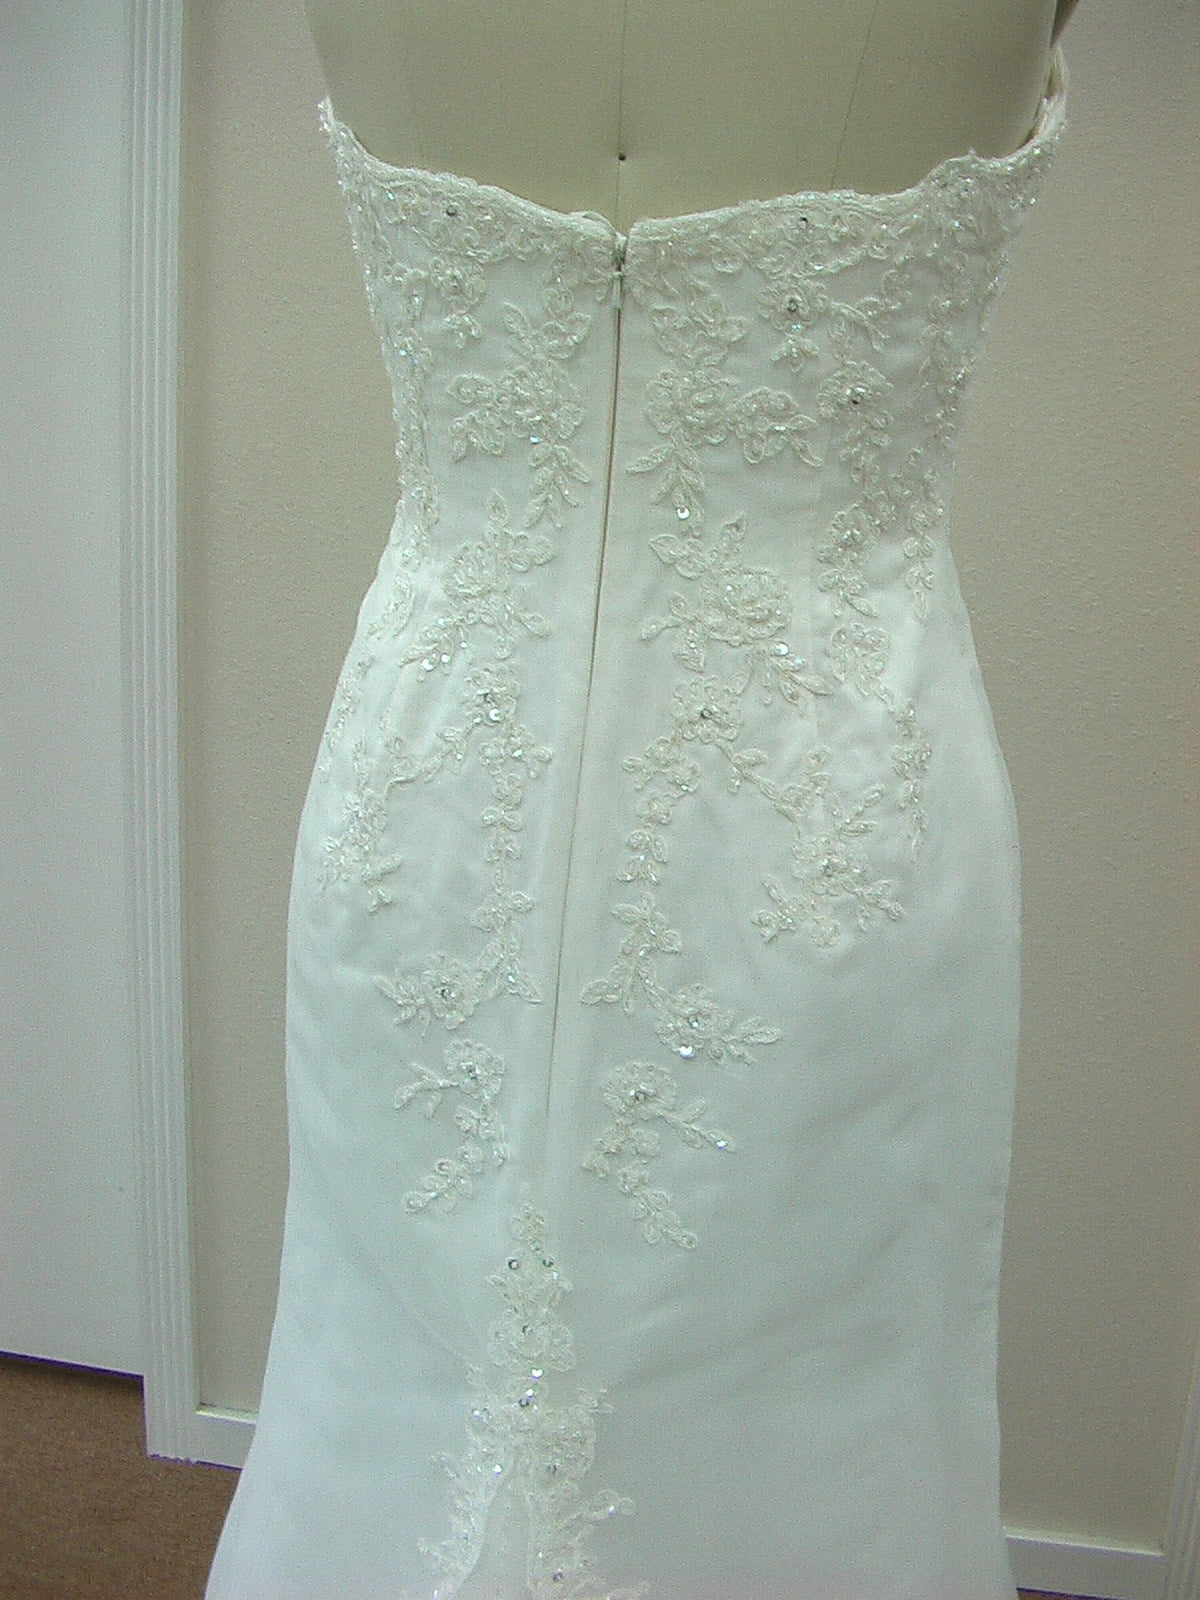 Pattis 2117 Amarante Ivory size 10 In Stock Wedding Dress - Tom's Bridal